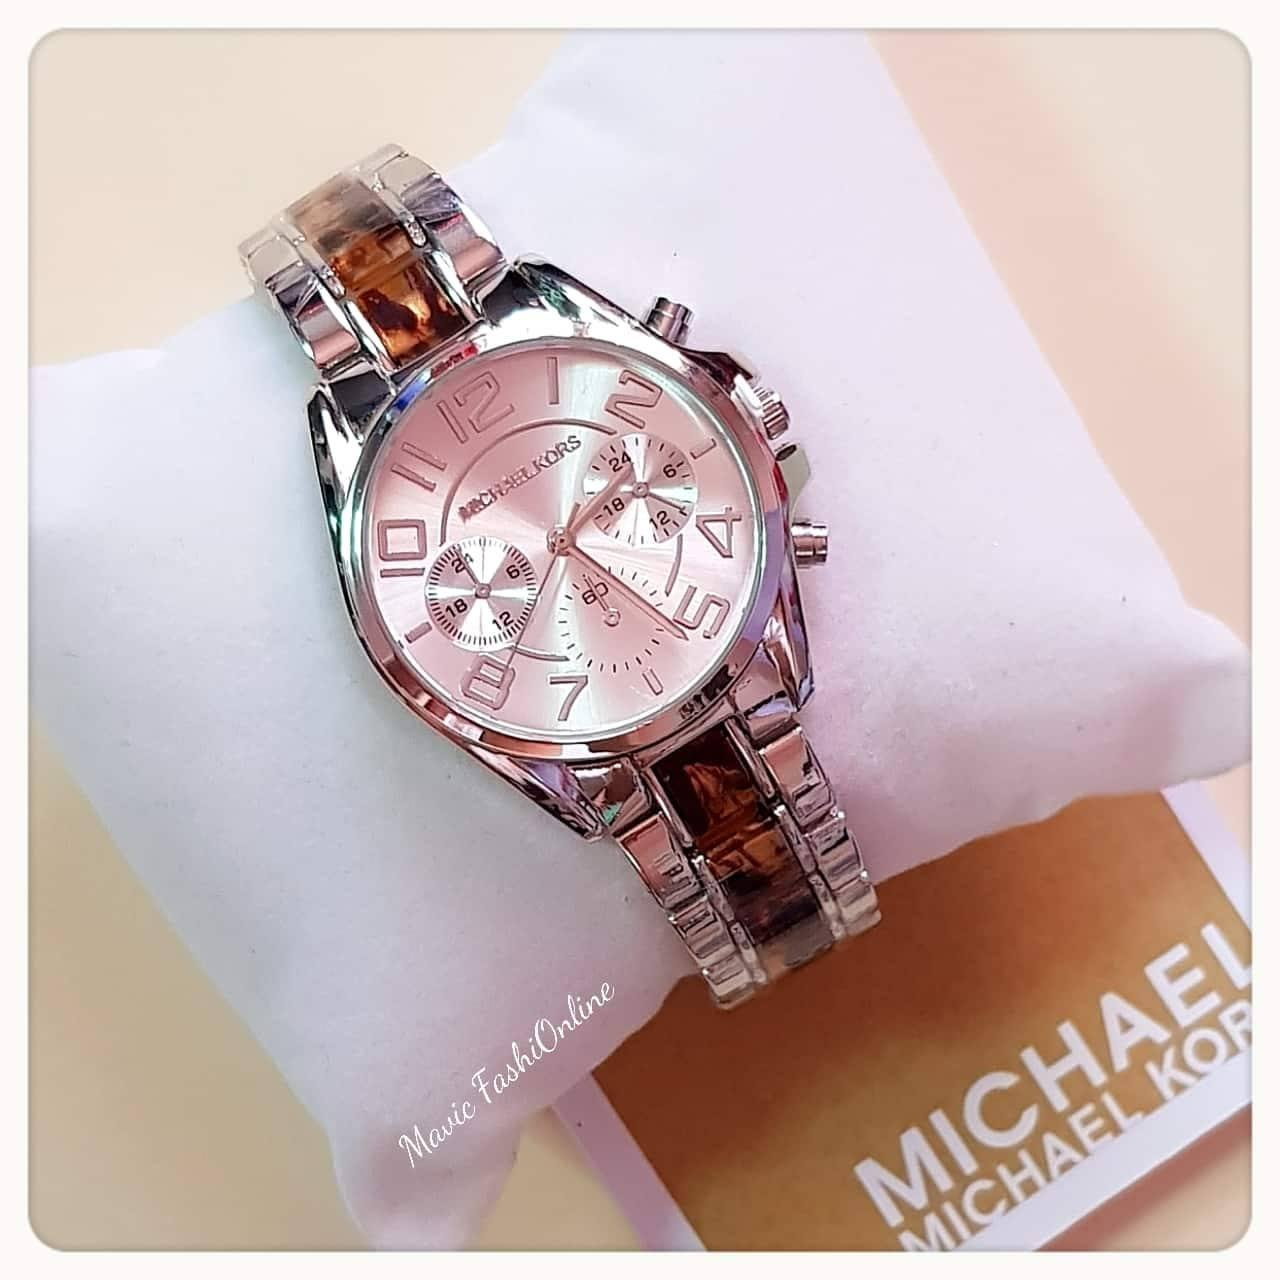 Coach Rubber Watch Authentic Michael Kors Philippines Watches For Women Sale New Arrival Stainles W Ceramic Designed